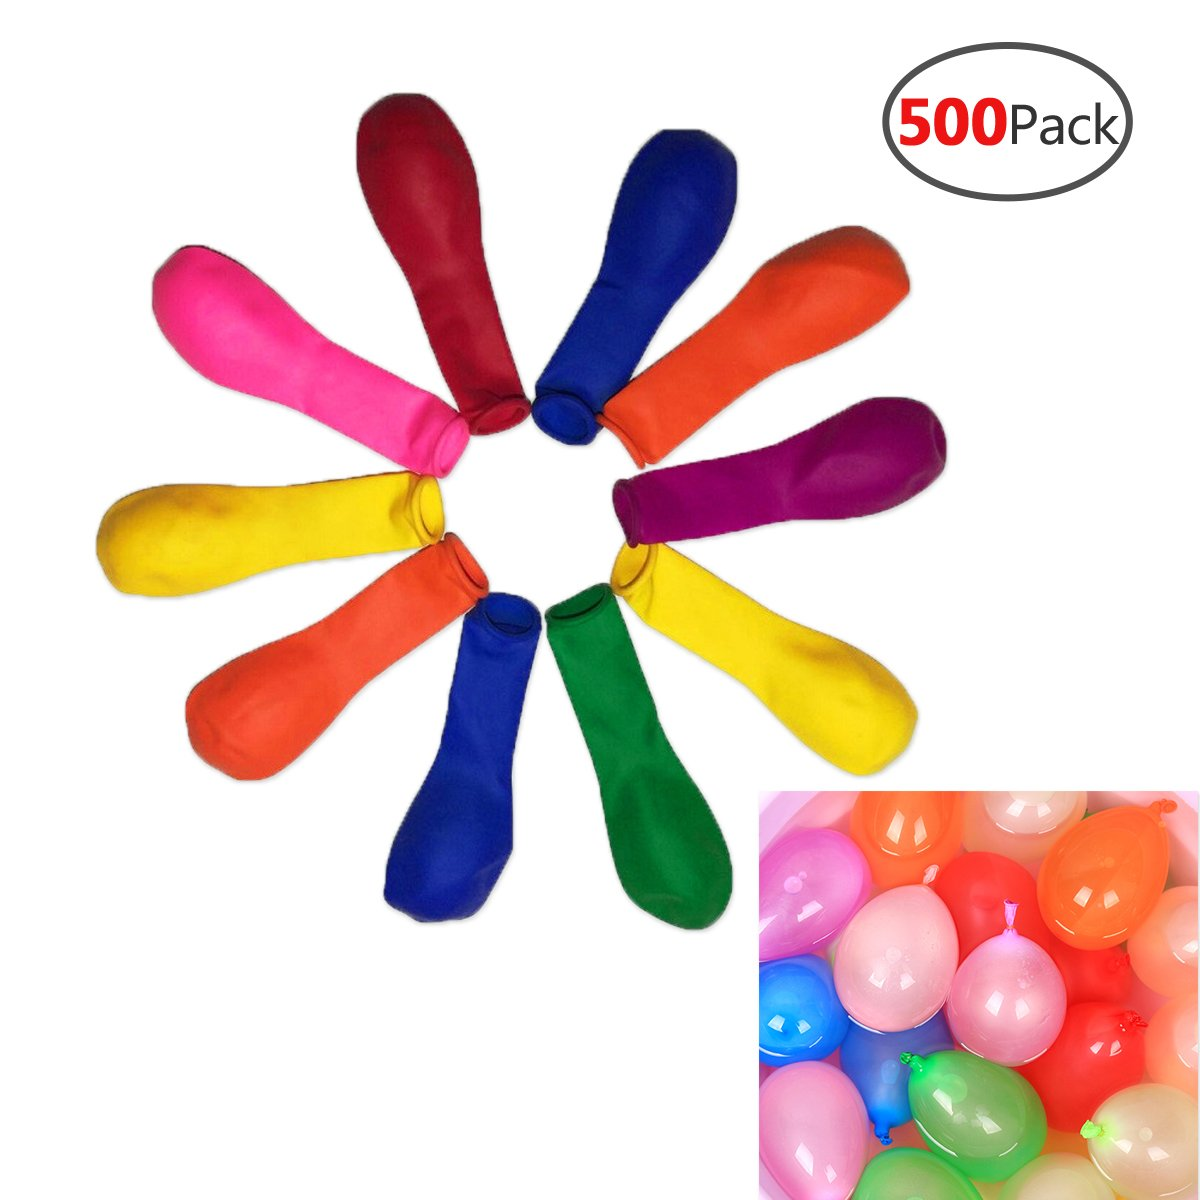 AzBoys 500pcs Small Latex Water Balloons,Colorful Air Balloons,Biodegradable Summer Splash Water Balloon Toys,for Water Bomb Game Fight Sports Fun Party